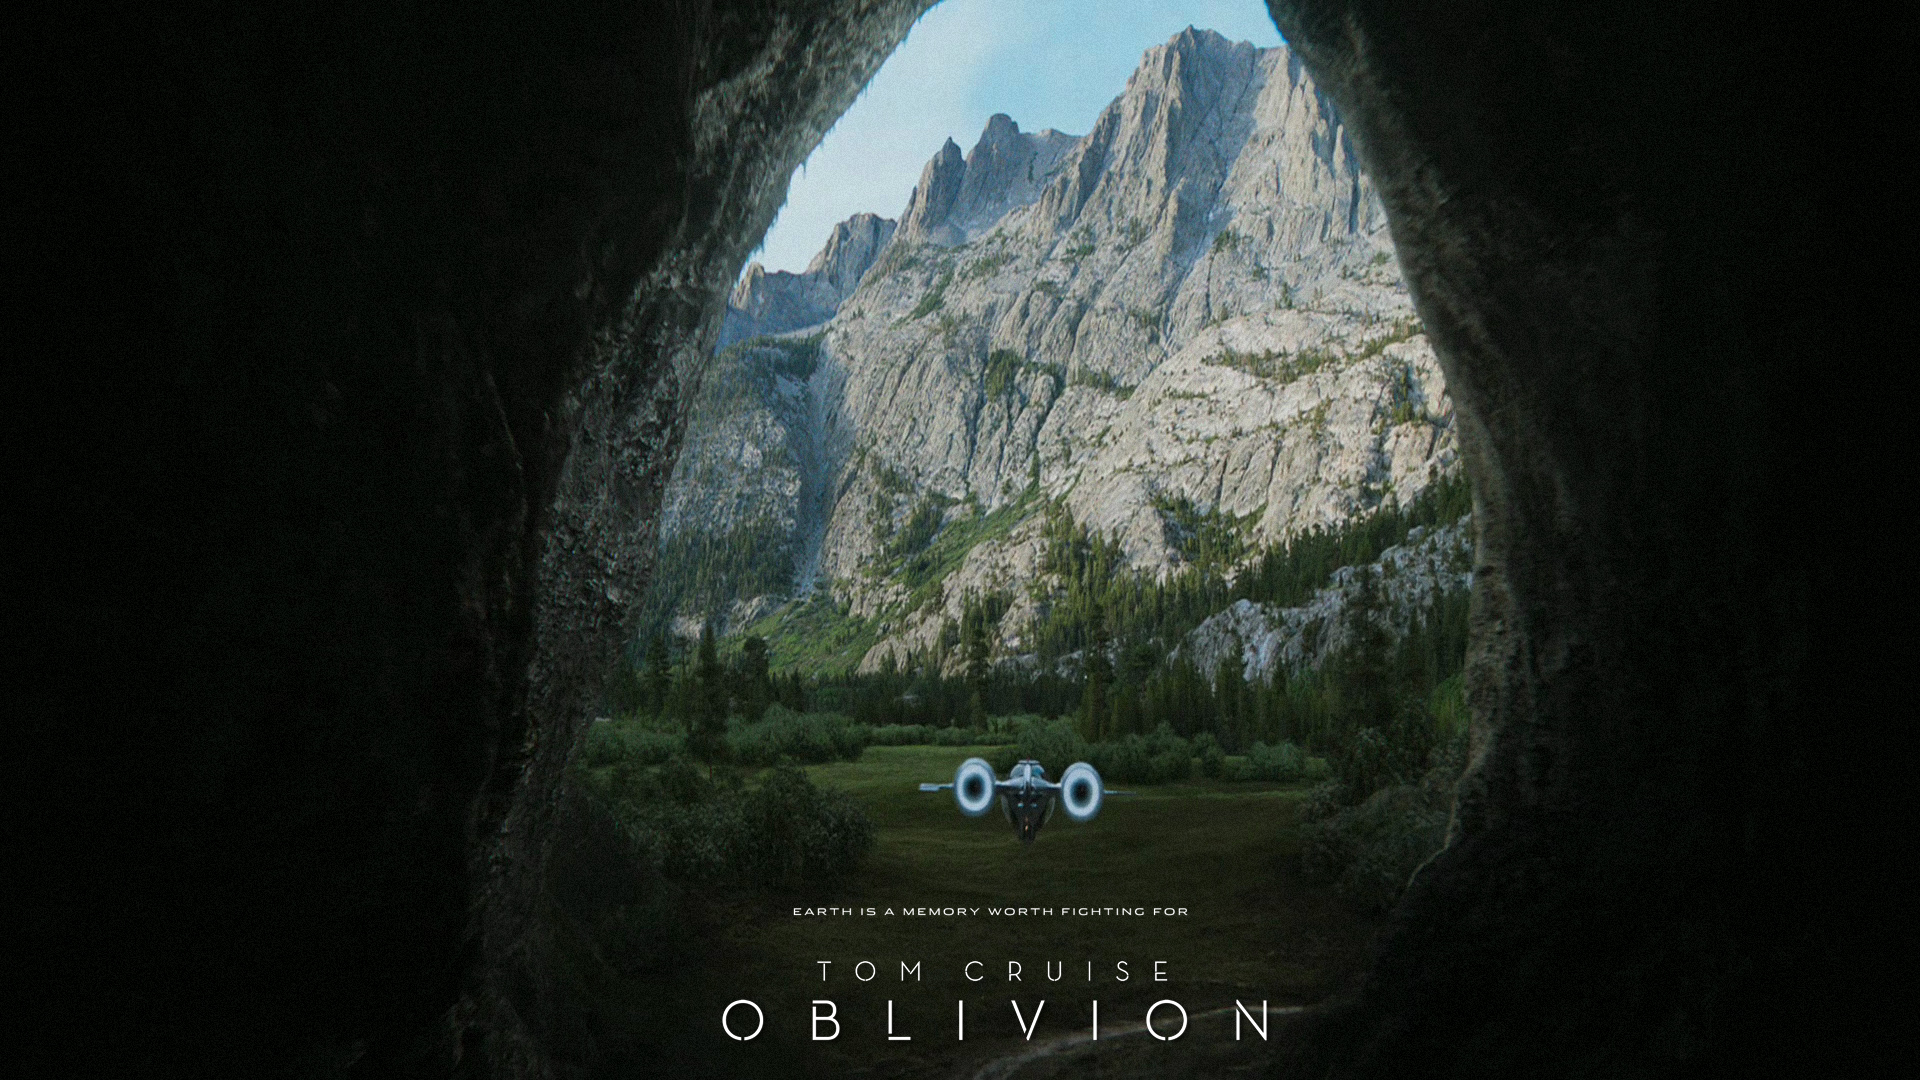 Download Tom Cruise Oblivion wallpapers 6 [1920x1080] 48 1920x1080